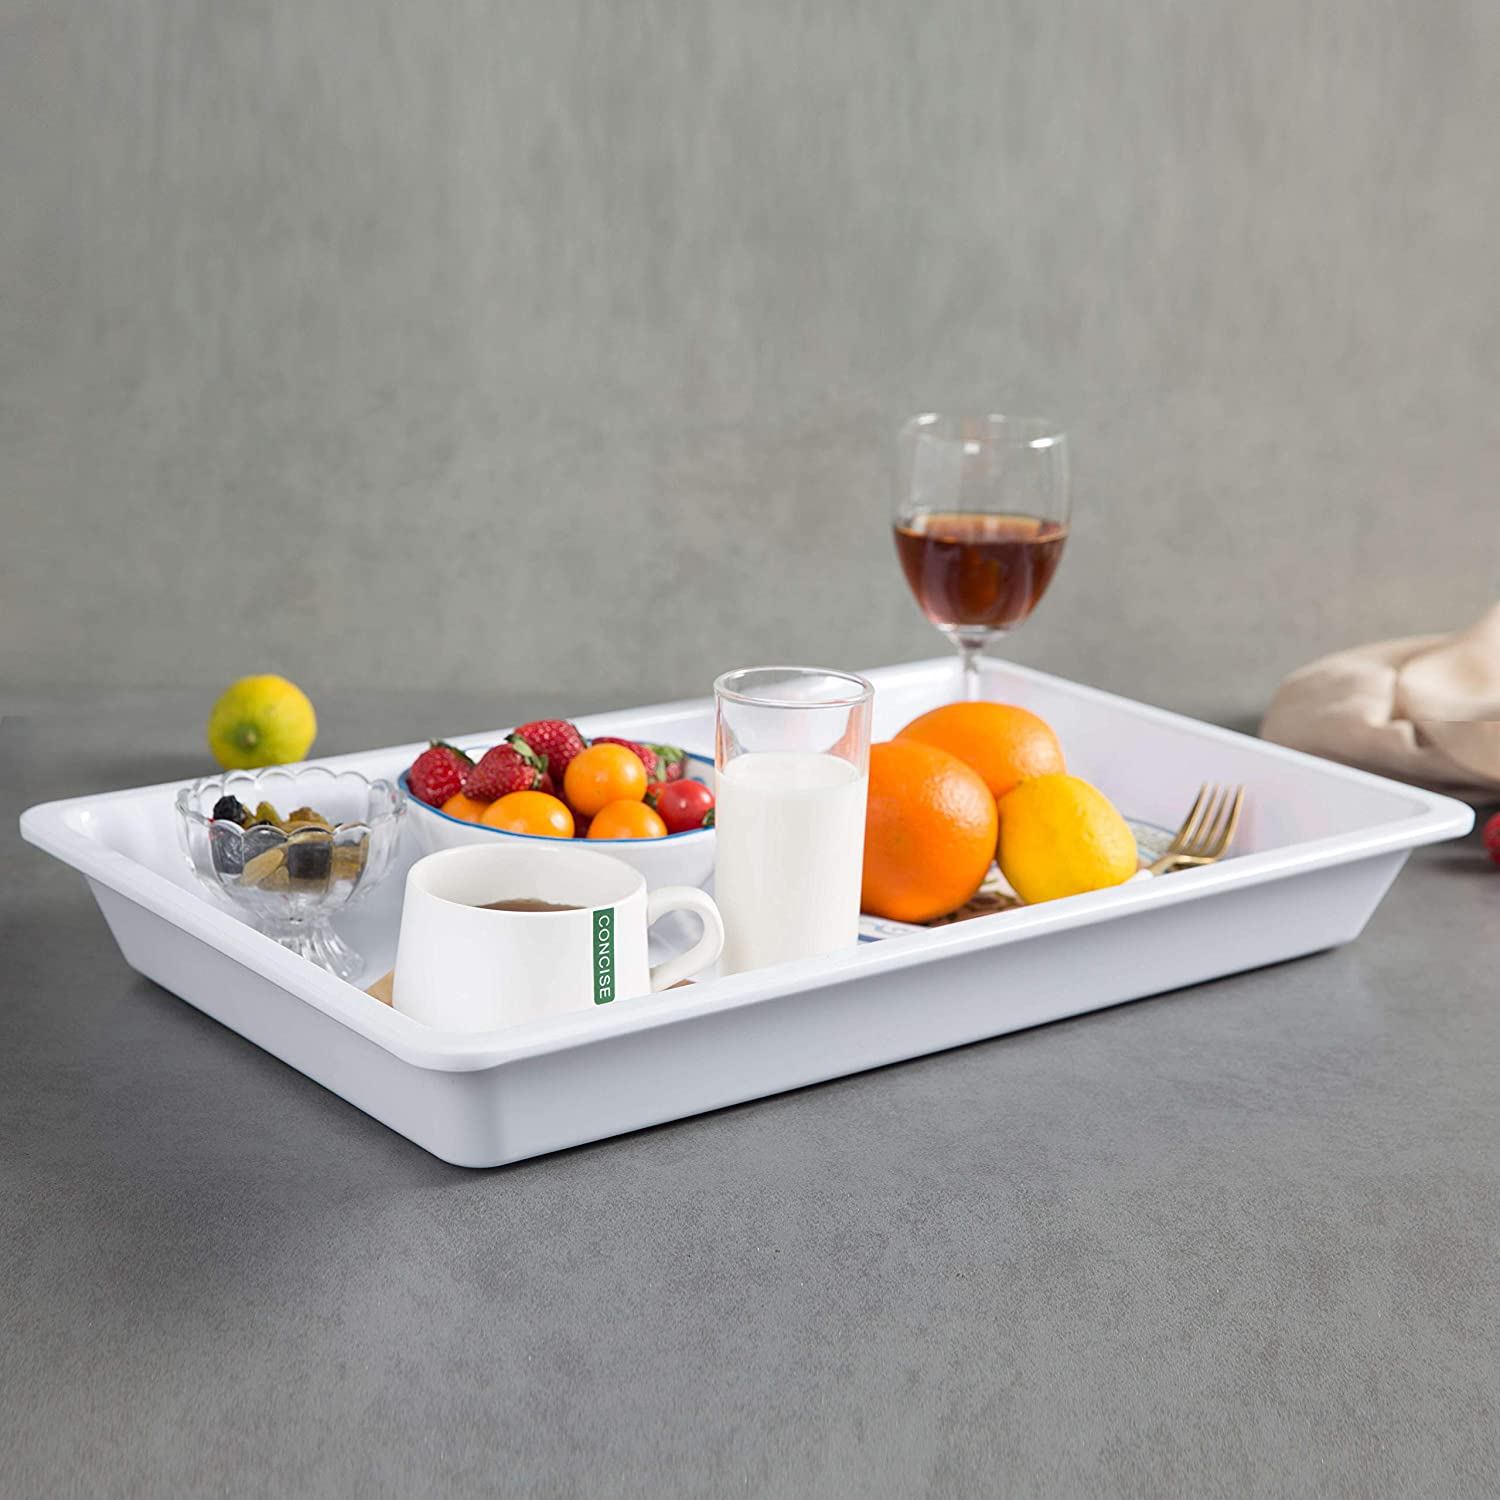 Melamine Serving Tray - Large Kitchen Tray for Outdoor and Indoor Use, 20 3/4 Inch, White